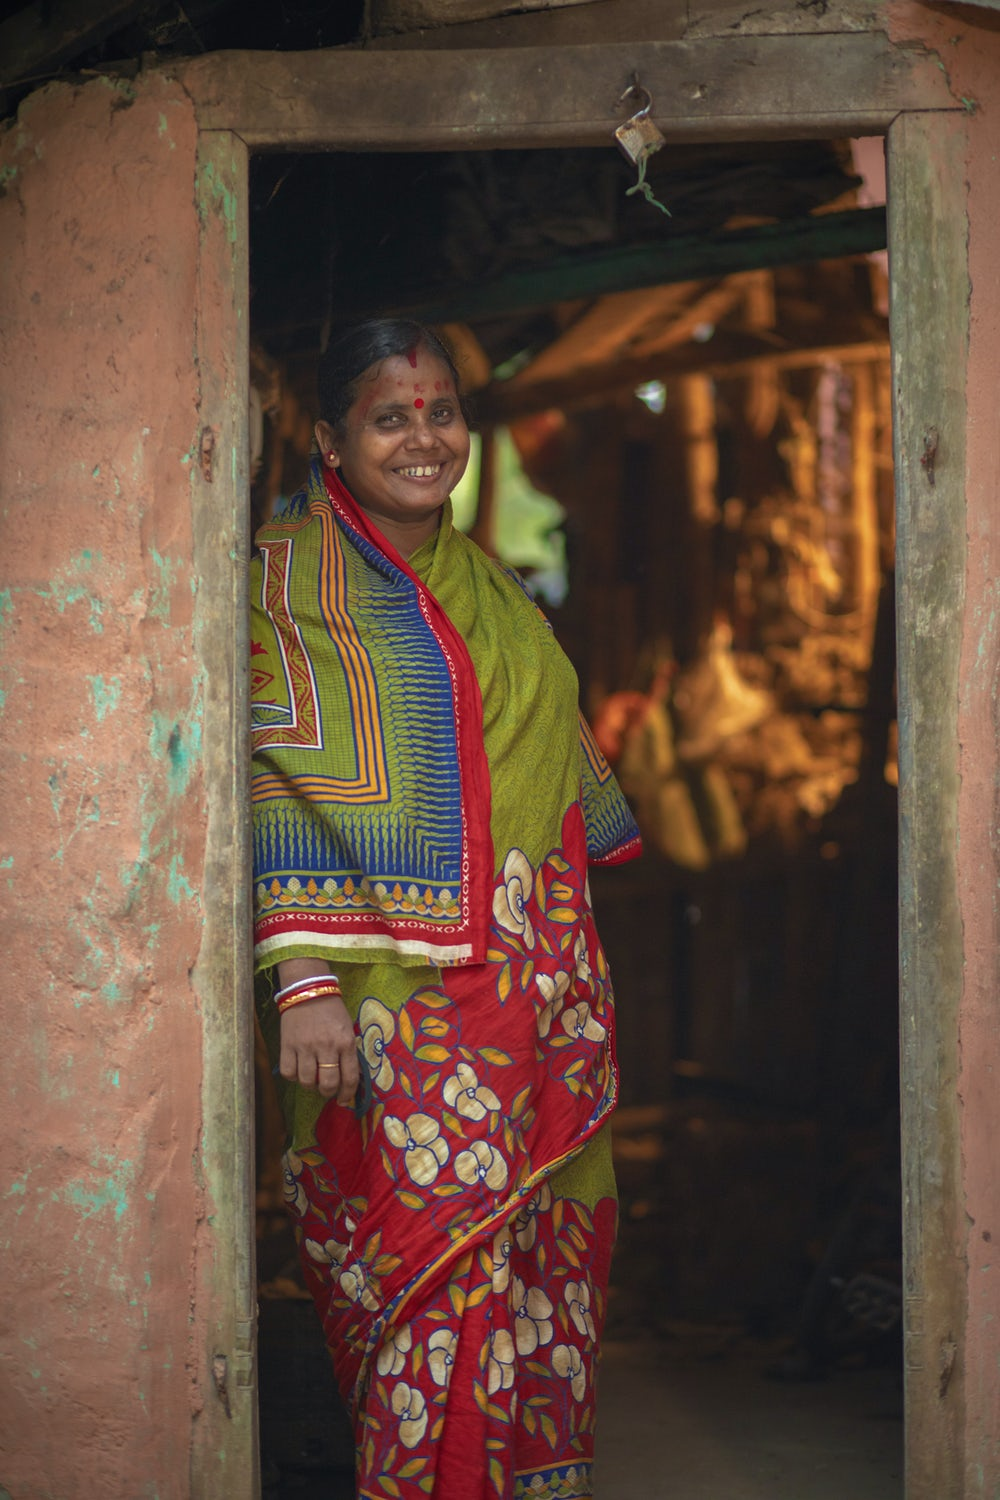 Geeta Rani Jena stands in the doorway of her home in Odisha, India.